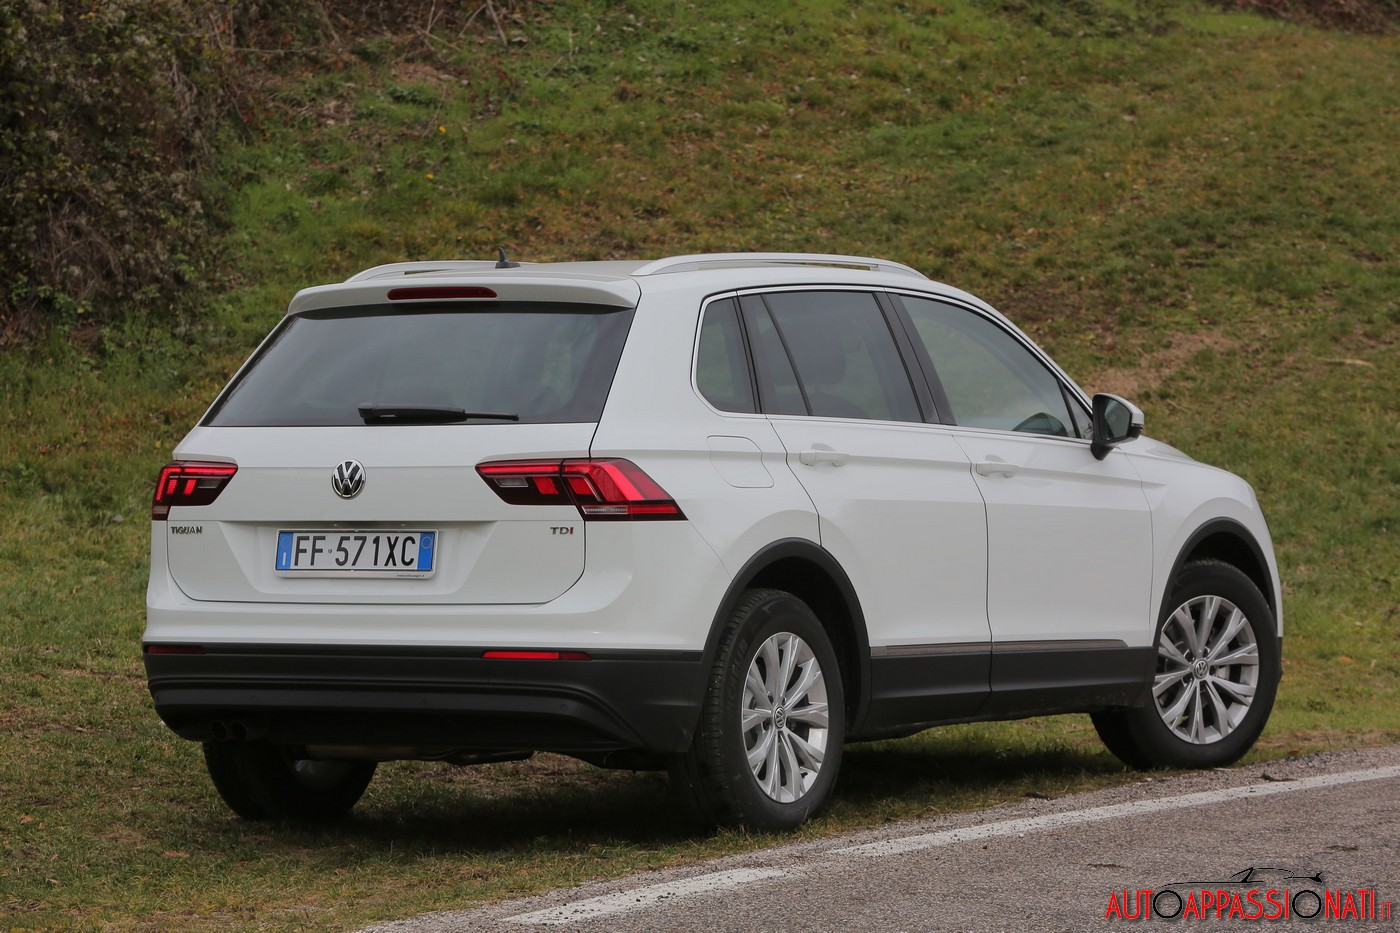 volkswagen tiguan 1 6 tdi i prova su strada in anteprima. Black Bedroom Furniture Sets. Home Design Ideas